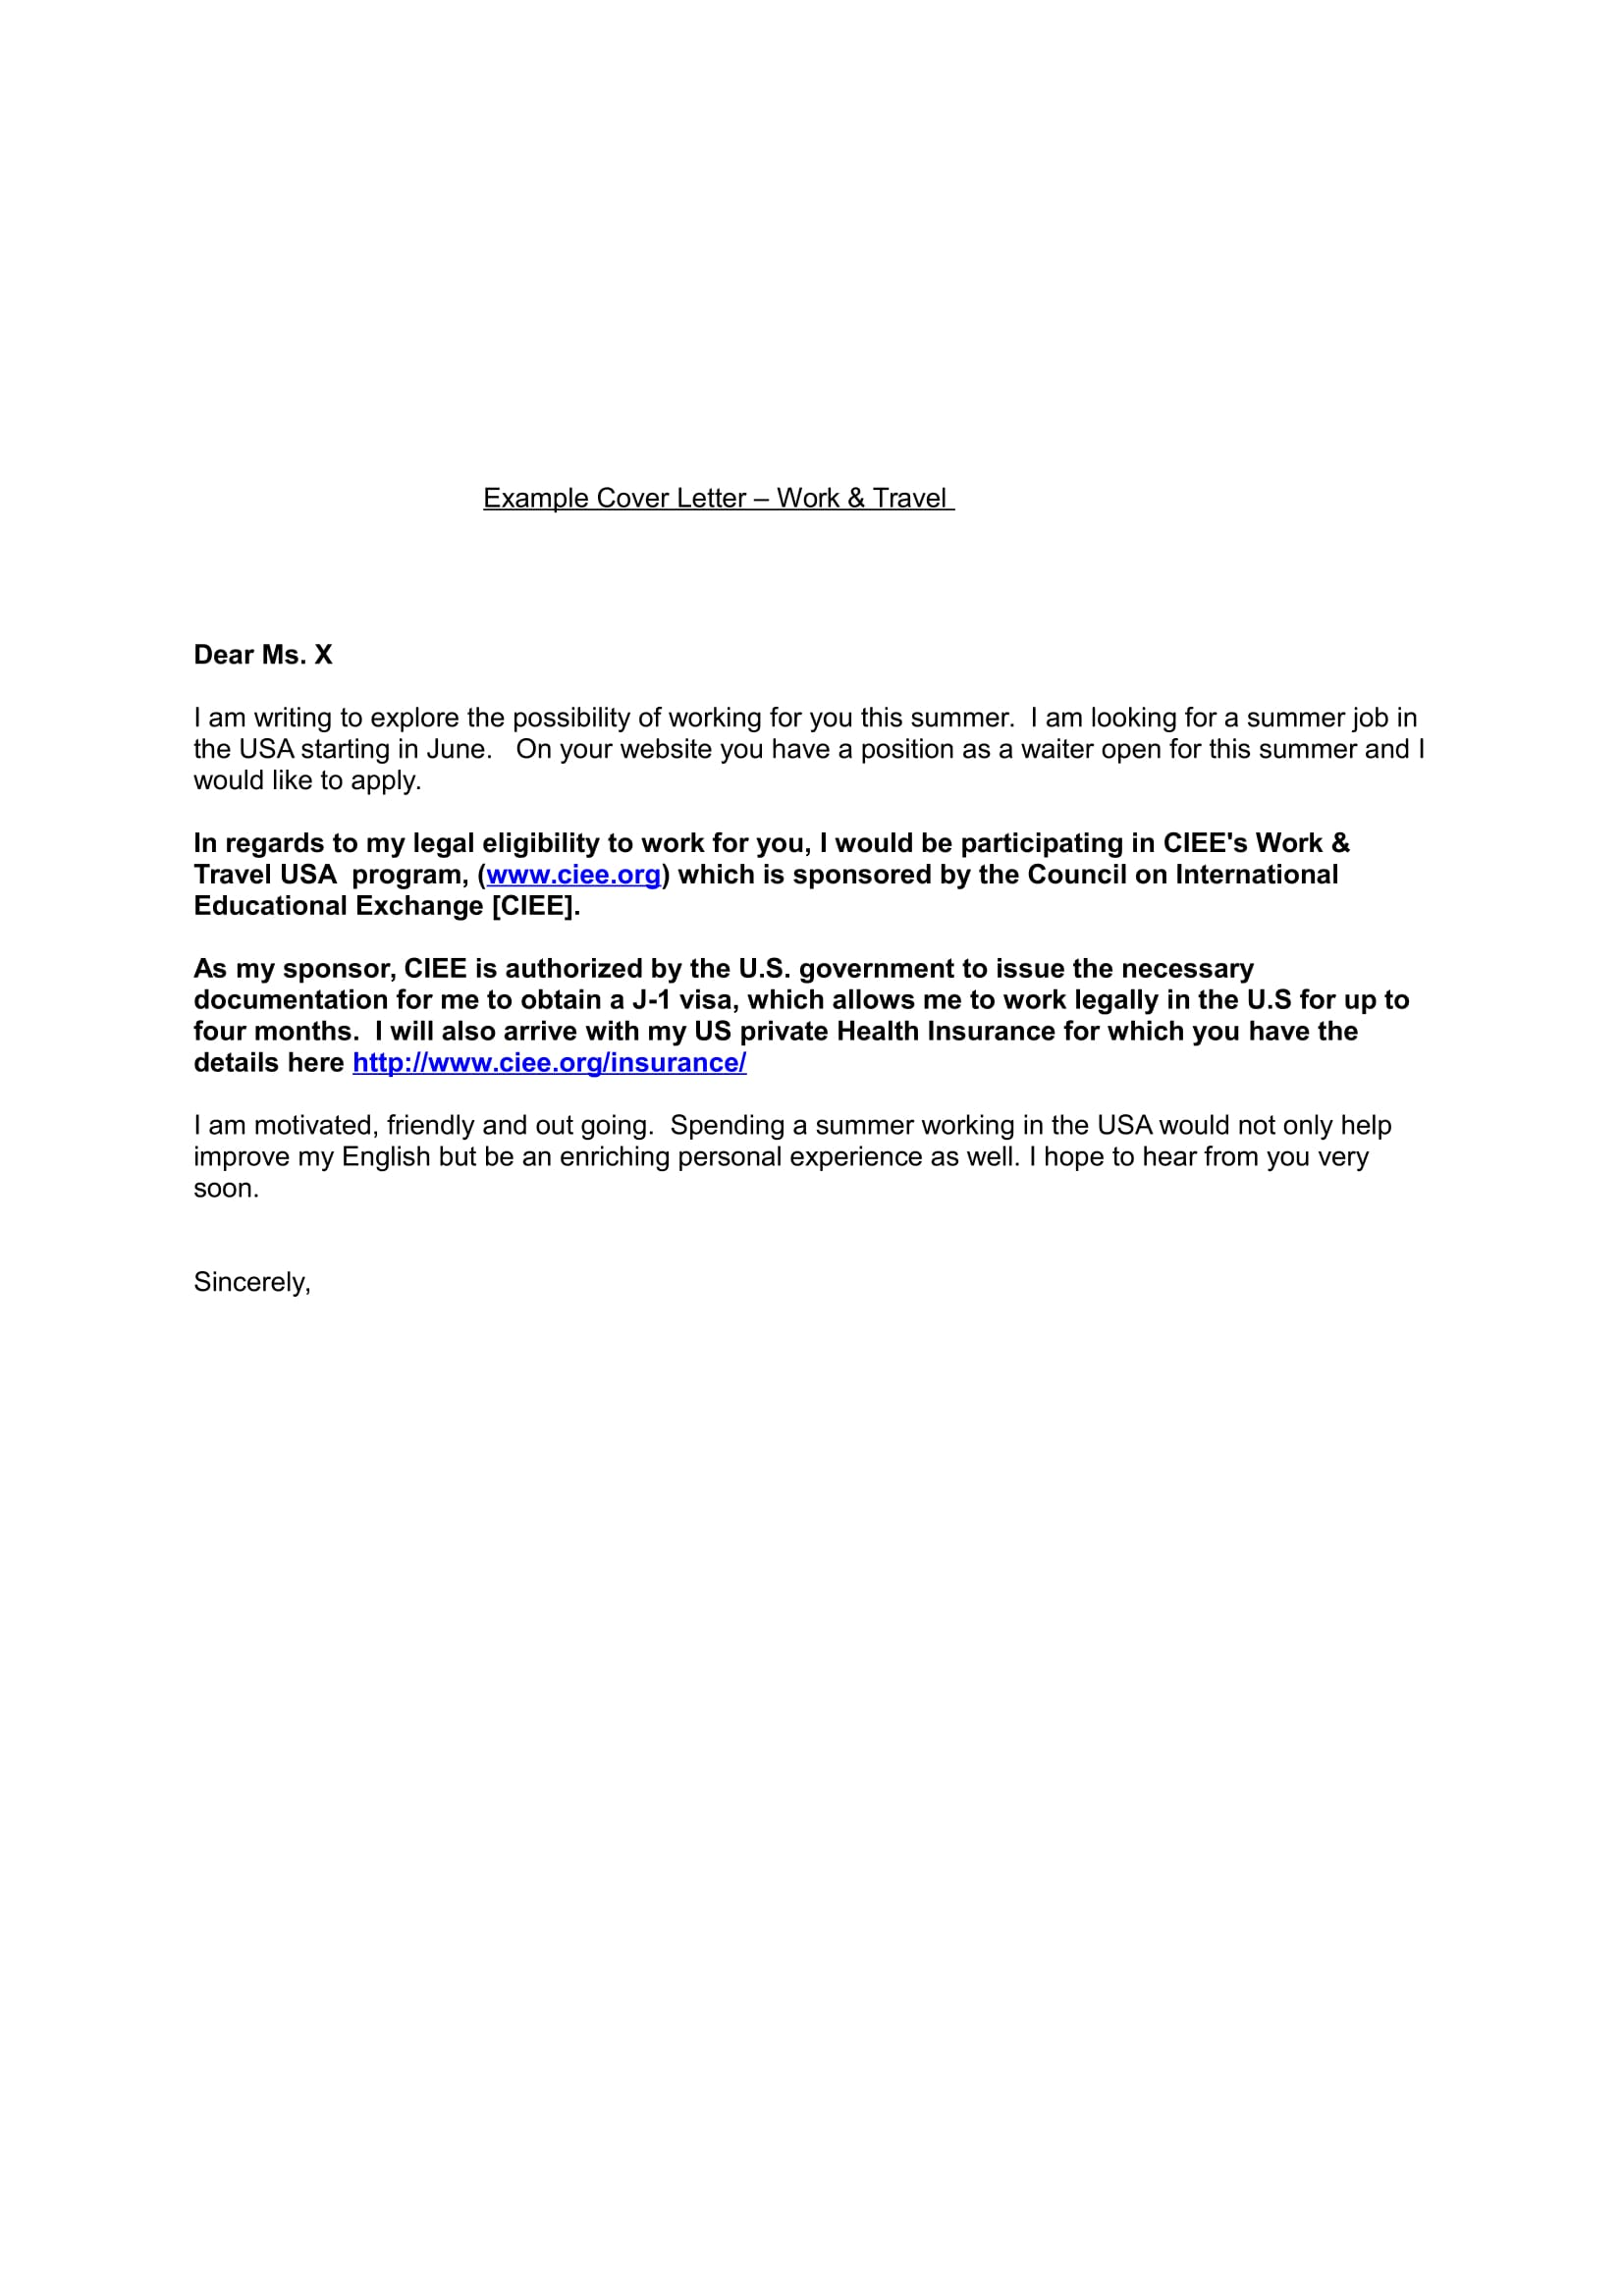 example cover letter work travel 1